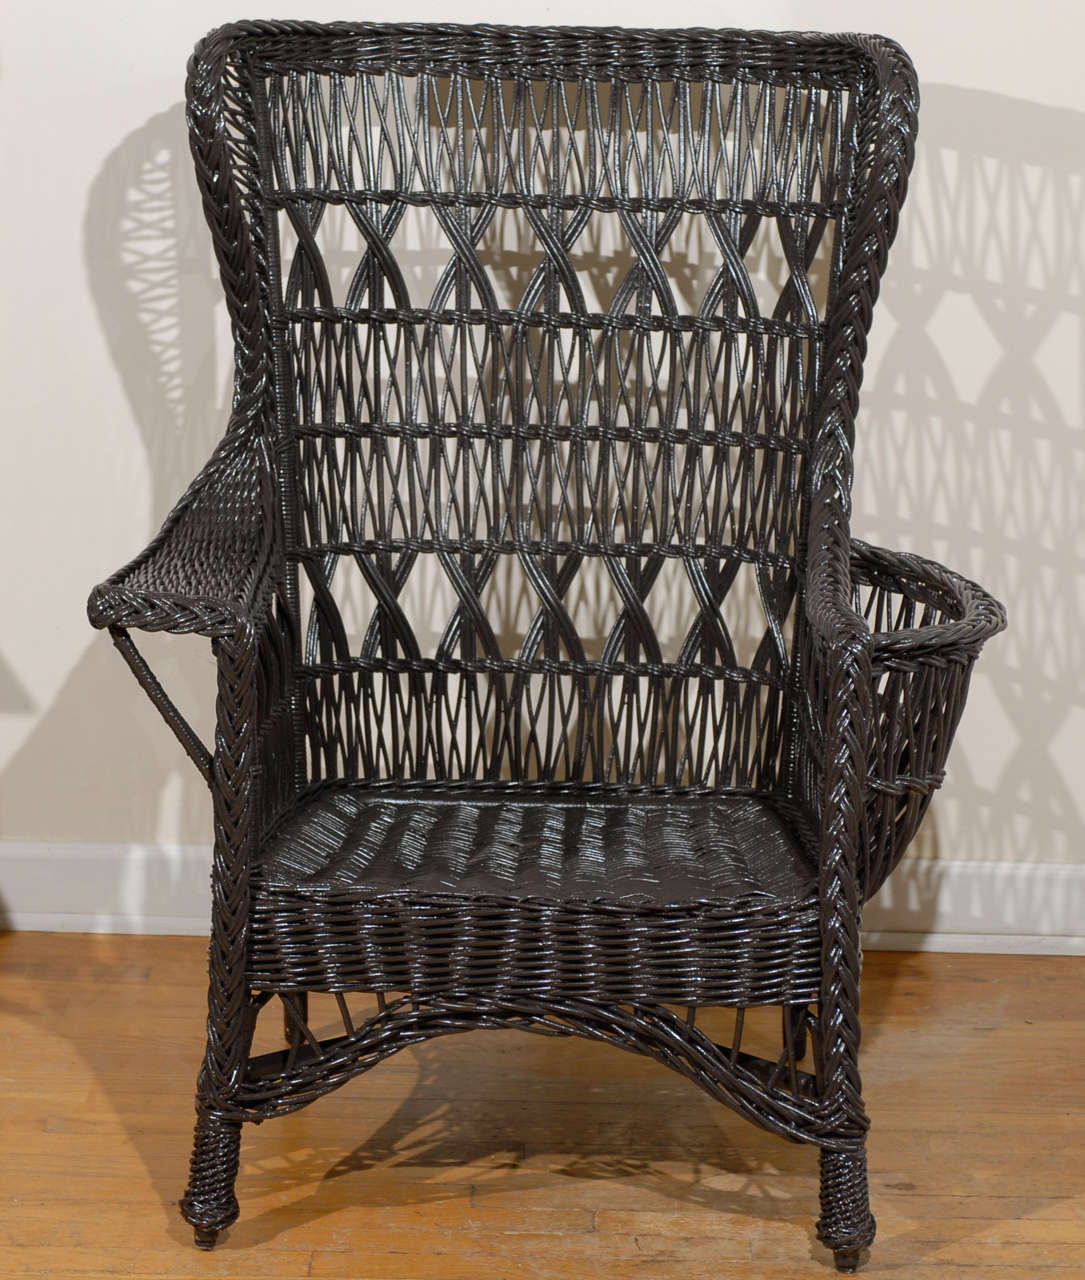 Antique American Wicker Wing Chair with Magazine Pocket For Sale 1